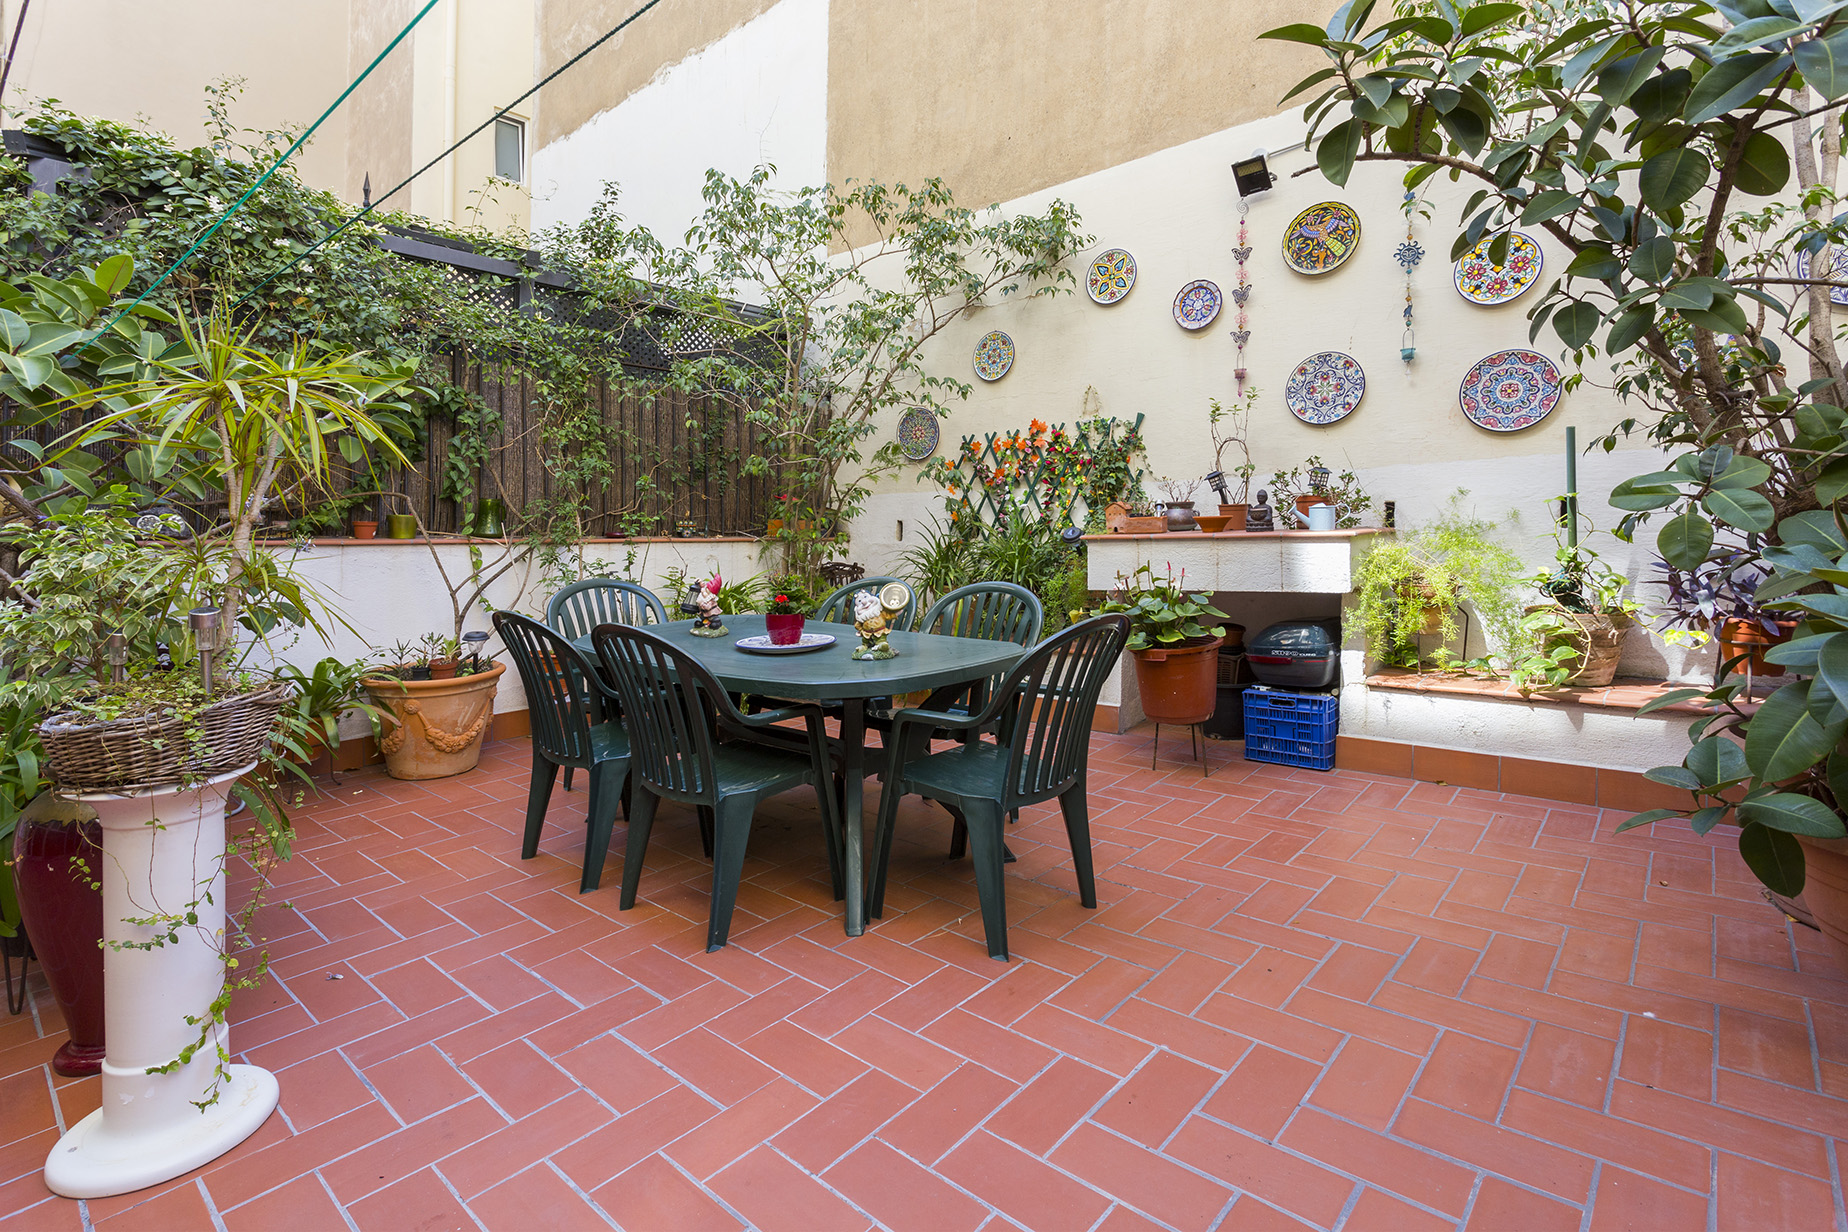 Apartment for Sale at First floor apartment with a private terrace Eixample, Barcelona City, Barcelona, 08007 Spain